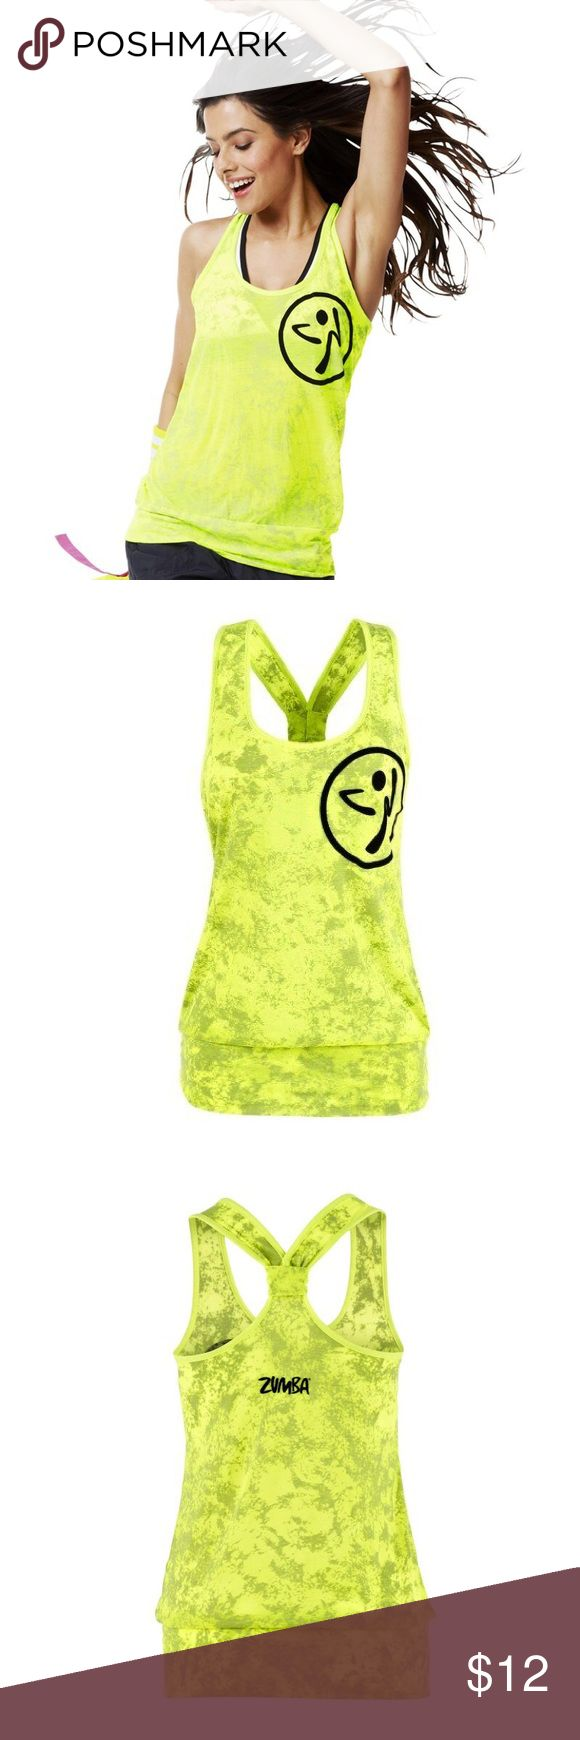 Zumba Neon Bubble Tank What's better than a top that takes you to the edge? How about one that takes you To Bubble Top and Beyond. The fitted waistband makes sure there are no wardrobe surprises while moving, and the funktified all-over burnout fabric keeps things electric while you shake-shake-shake. Soft-to-the touch signature bi-color burnout fabric with Zumba logo in fuzzy flock. Has been worn a few times but is in great condition. Size: XS/S  Material: - 50% Polyester - 50% Cotton Zumba…